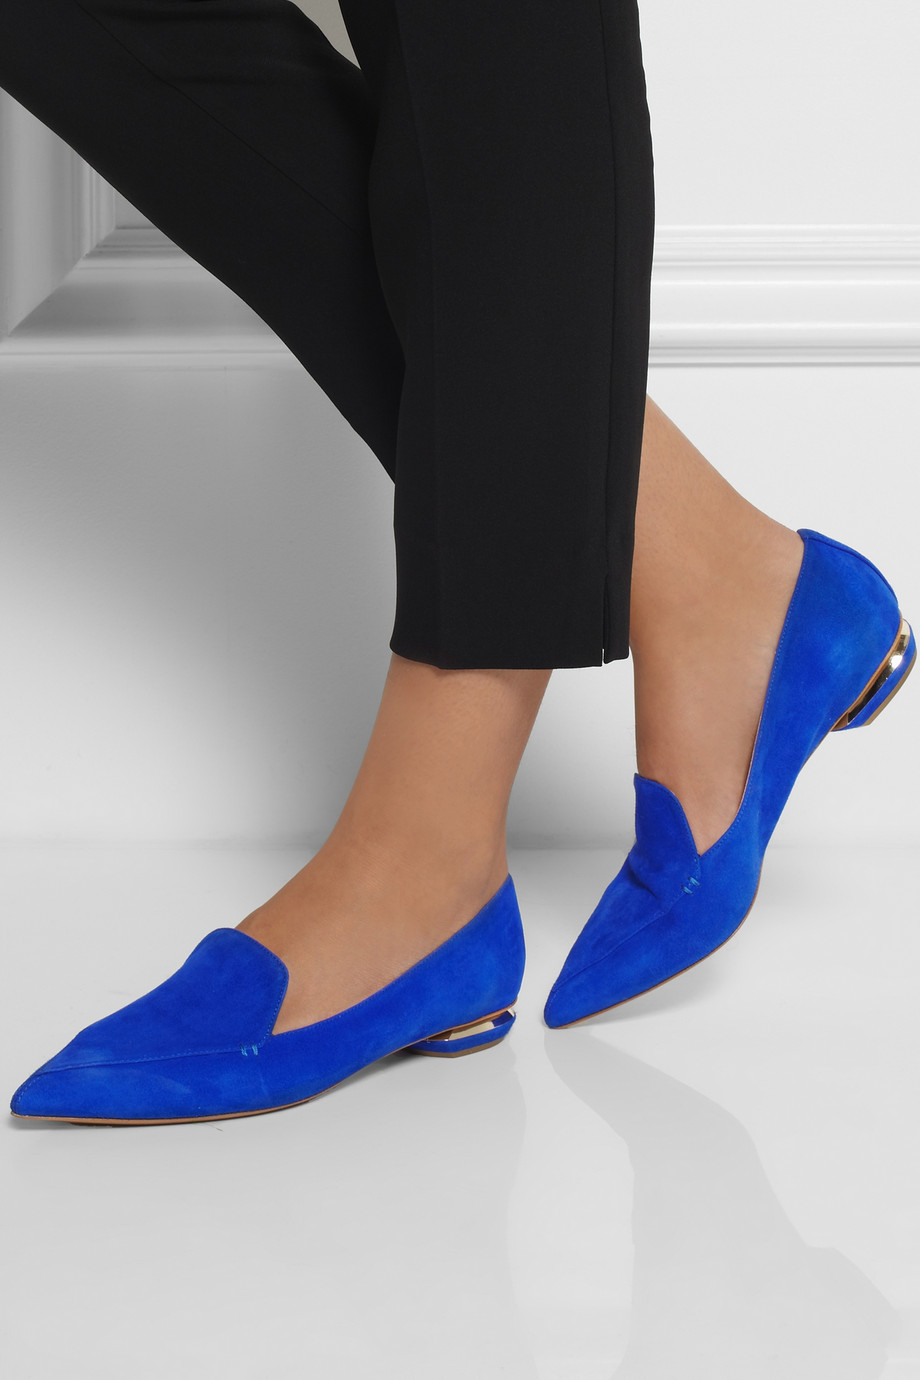 cheap sale high quality 100% authentic sale online Nicholas Kirkwood Pointed-Toe Studded Flats outlet comfortable for sale cheap authentic cheap price store VmZzRtSW4z